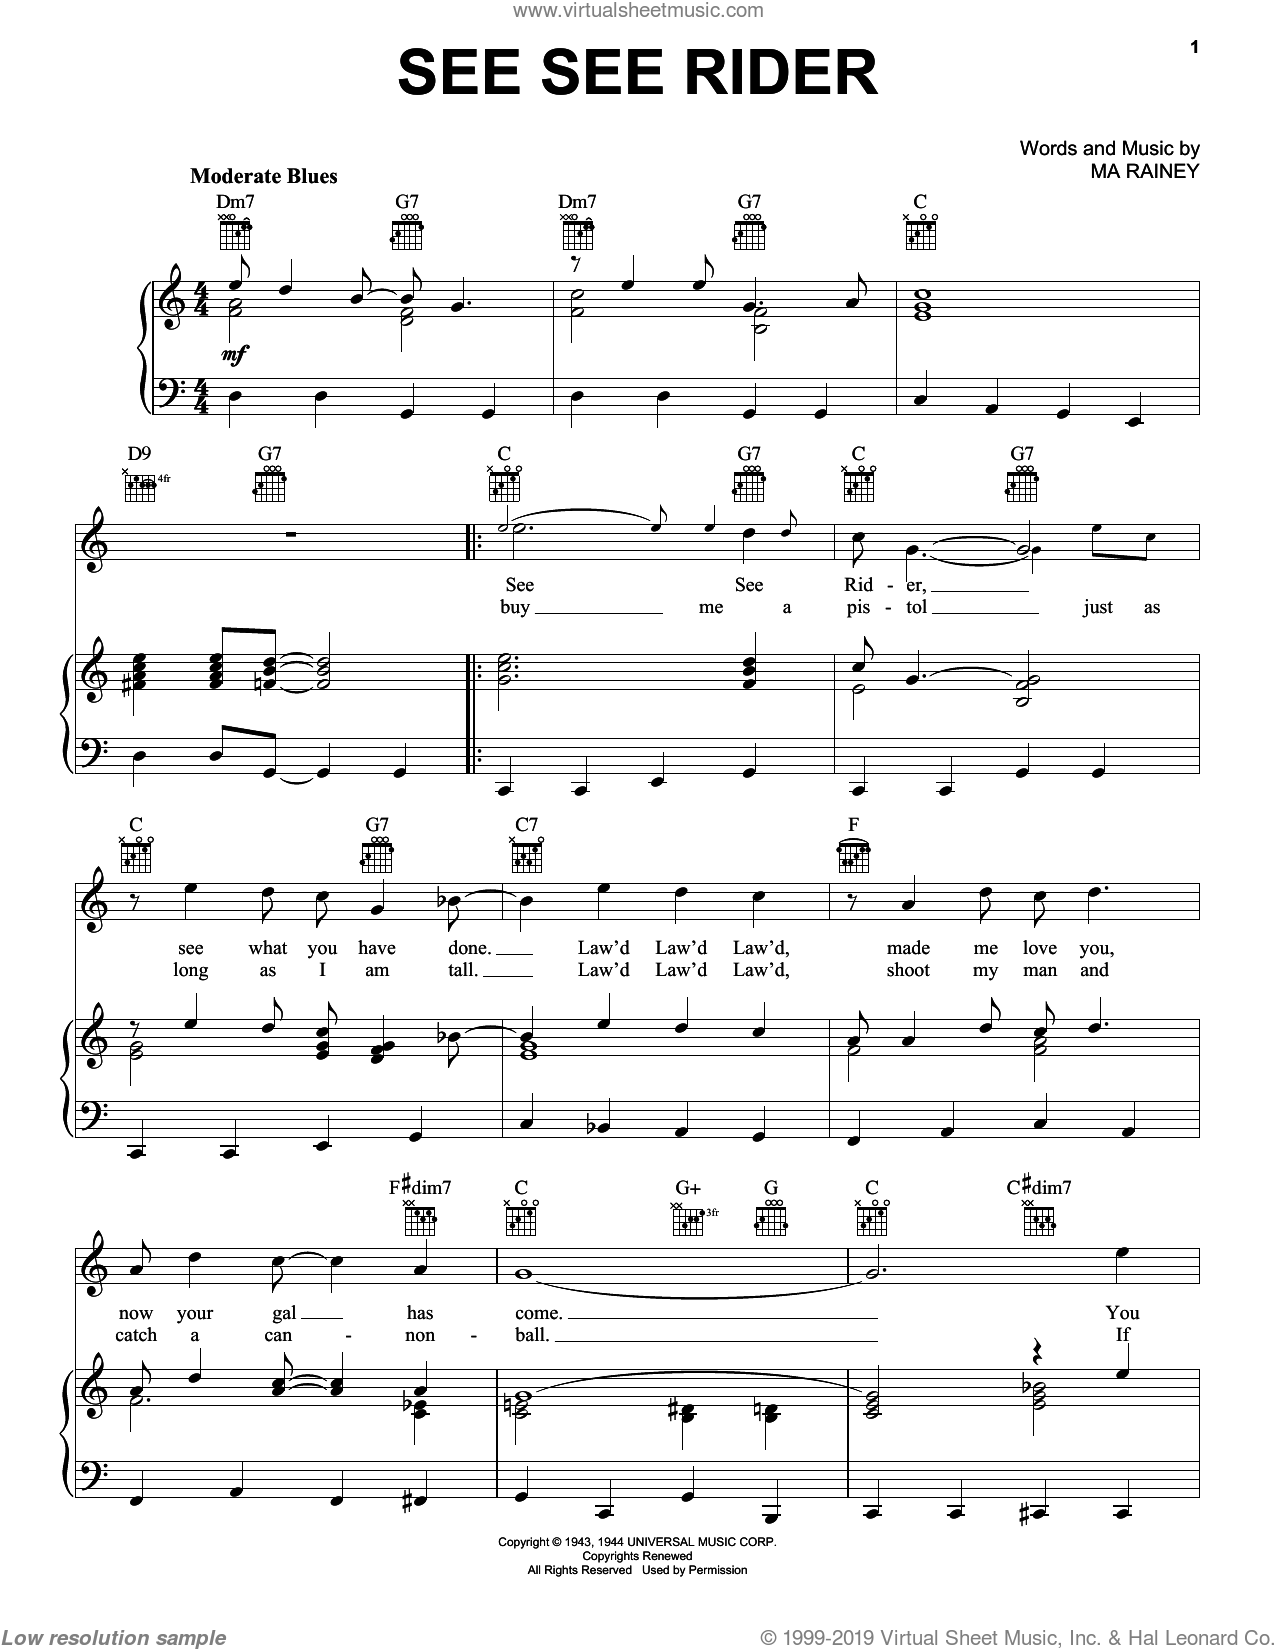 See See Rider sheet music for voice, piano or guitar by The Animals, Big Bill Broonzy, Ray Charles and Ma Rainey, intermediate skill level